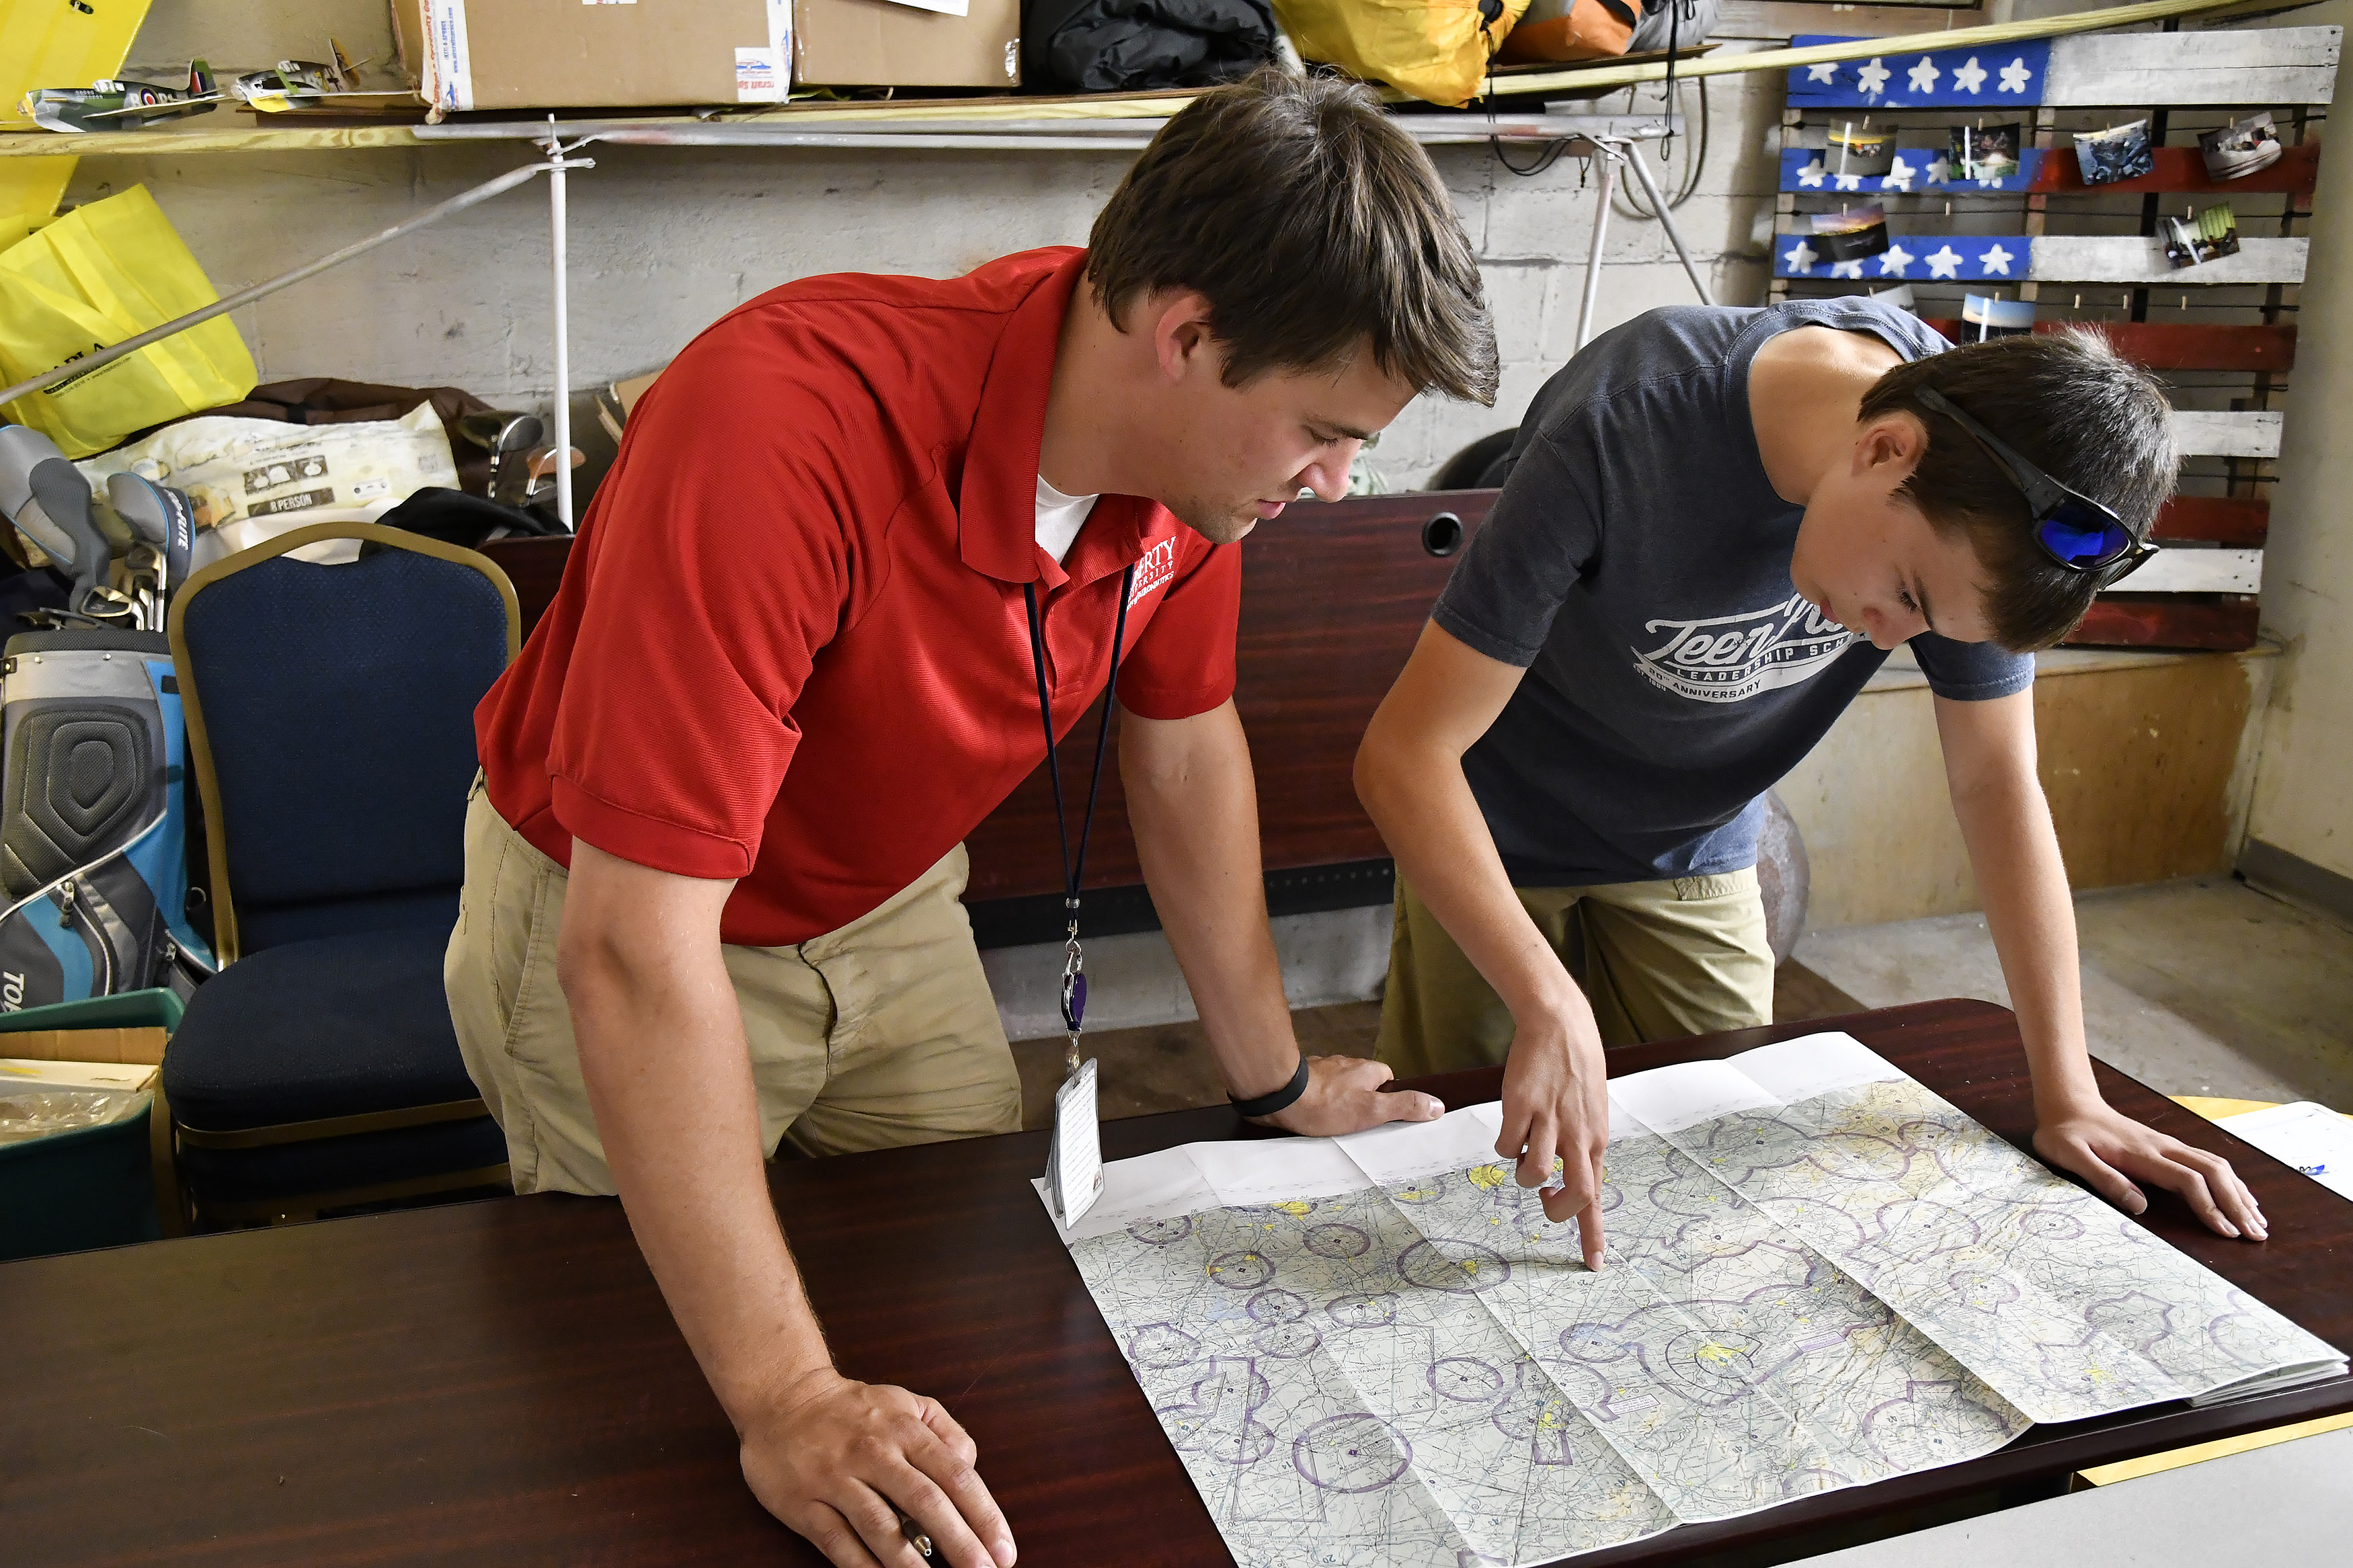 Instructor John Adams coaches student Timothy Cashman on chart skills at an informal New London Airport classroom in Lynchburg, Virginia. Photo by David Tulis.